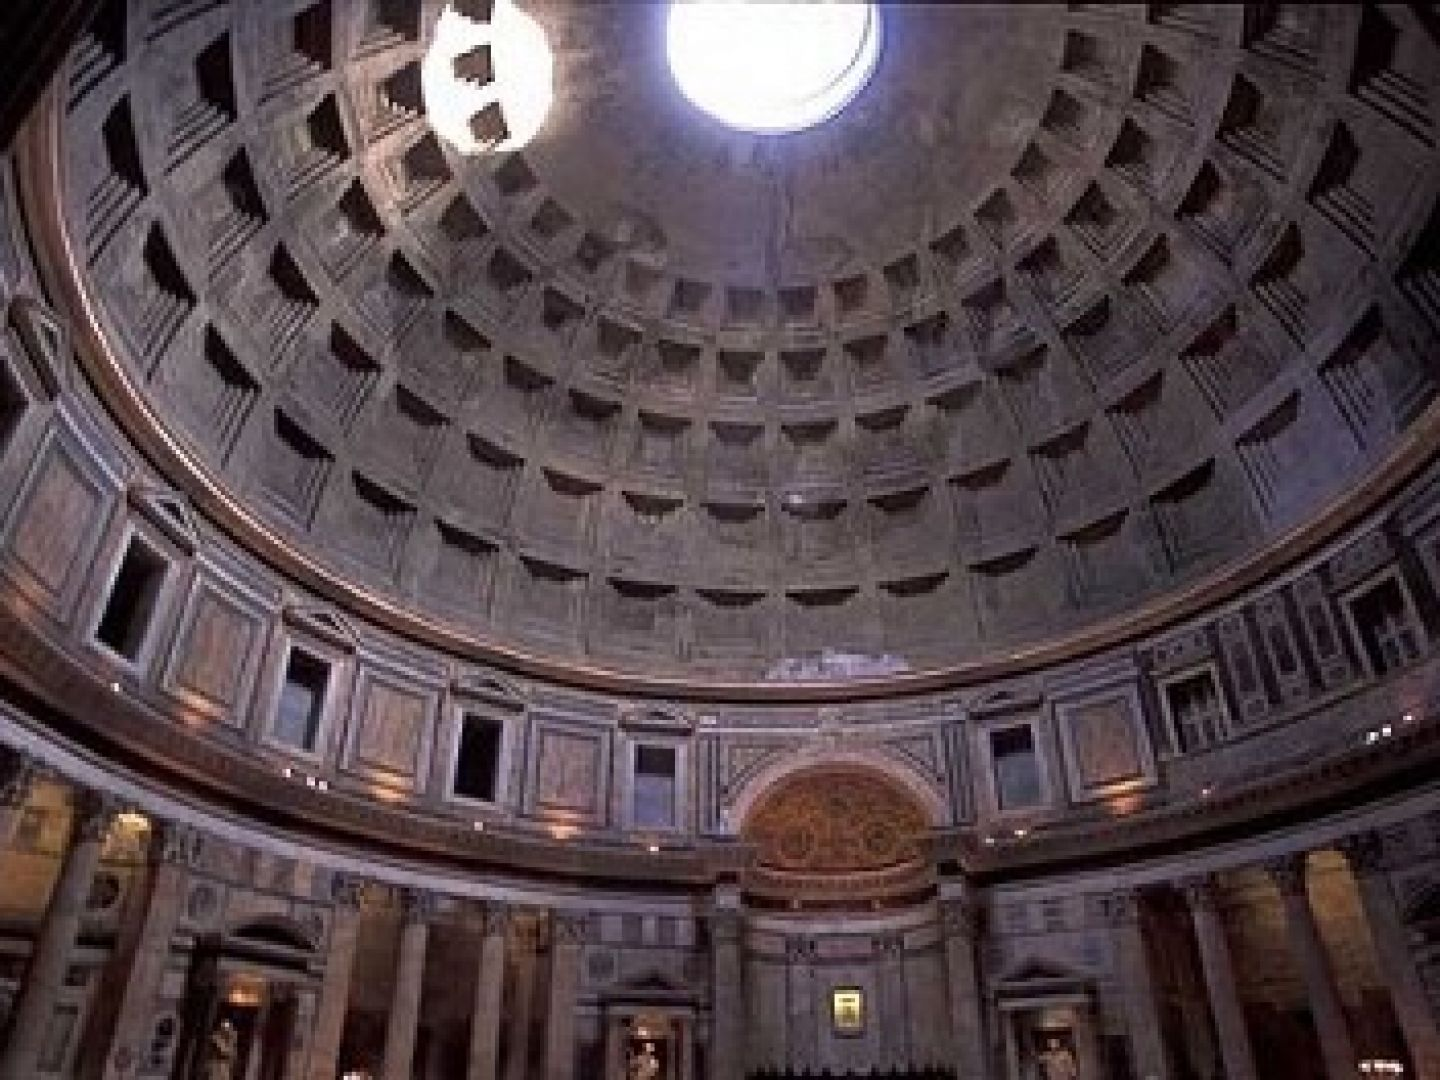 2,000 year old Pantheon Dome, Rome